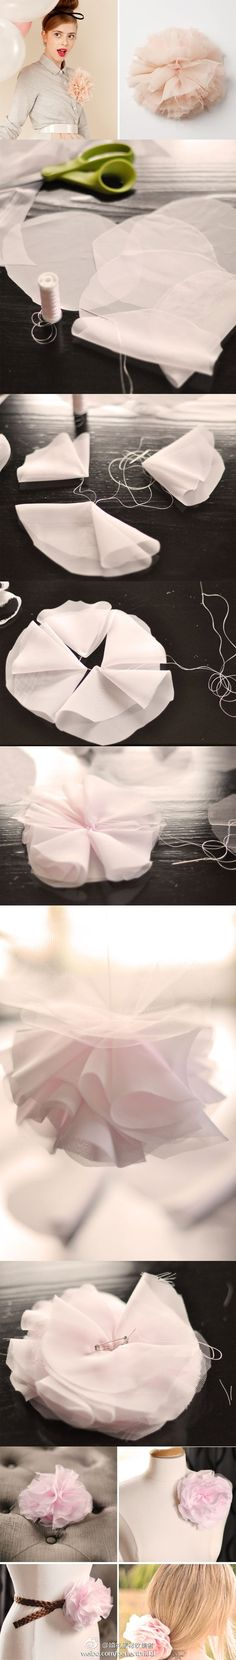 Inspirational Monday – Do it yourself (diy) Flower series – DIY Bridal Flowe. Inspirational Monday – Do it yourself (diy) Flower series – DIY Bridal Flower…